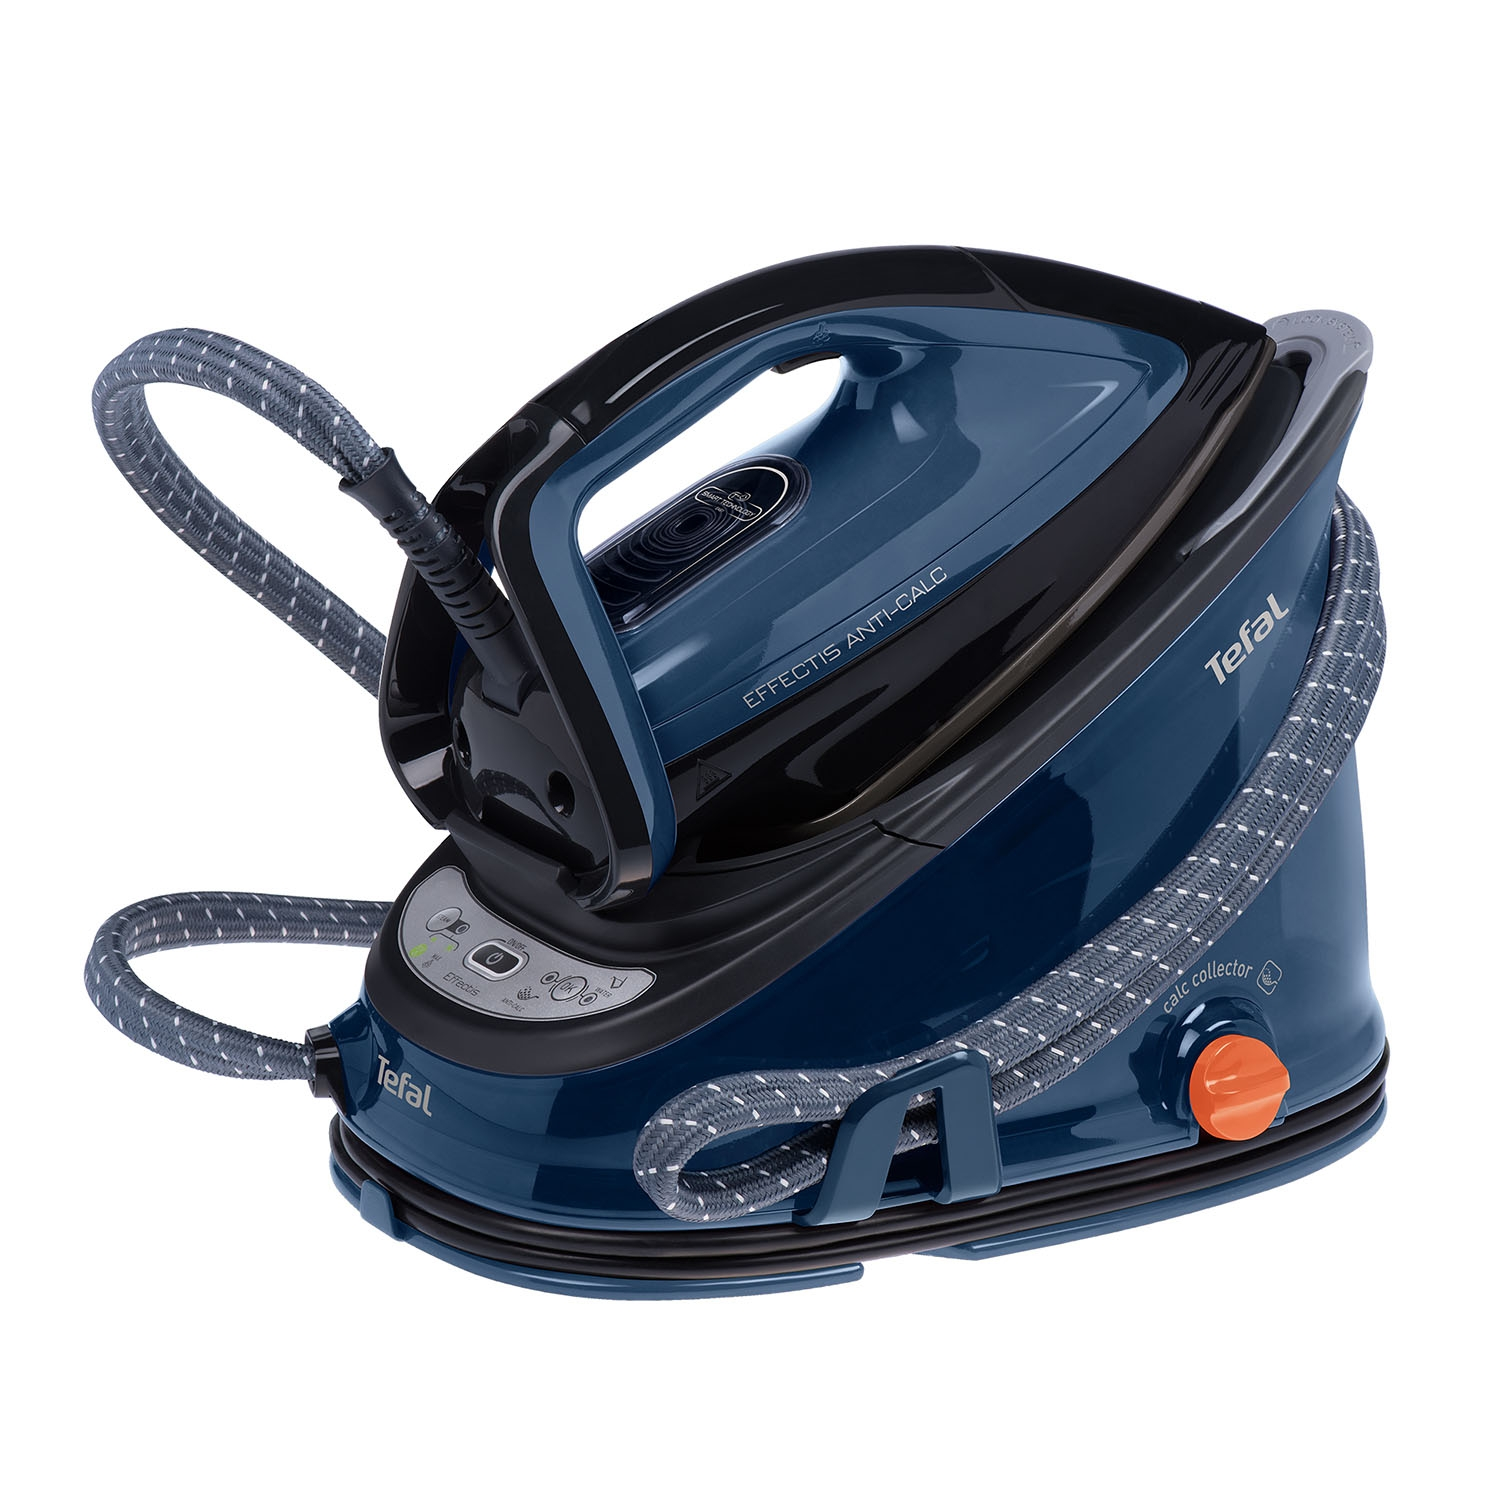 Image of Tefal GV6840 Effectis Anti Scale Steam Generator, Blue